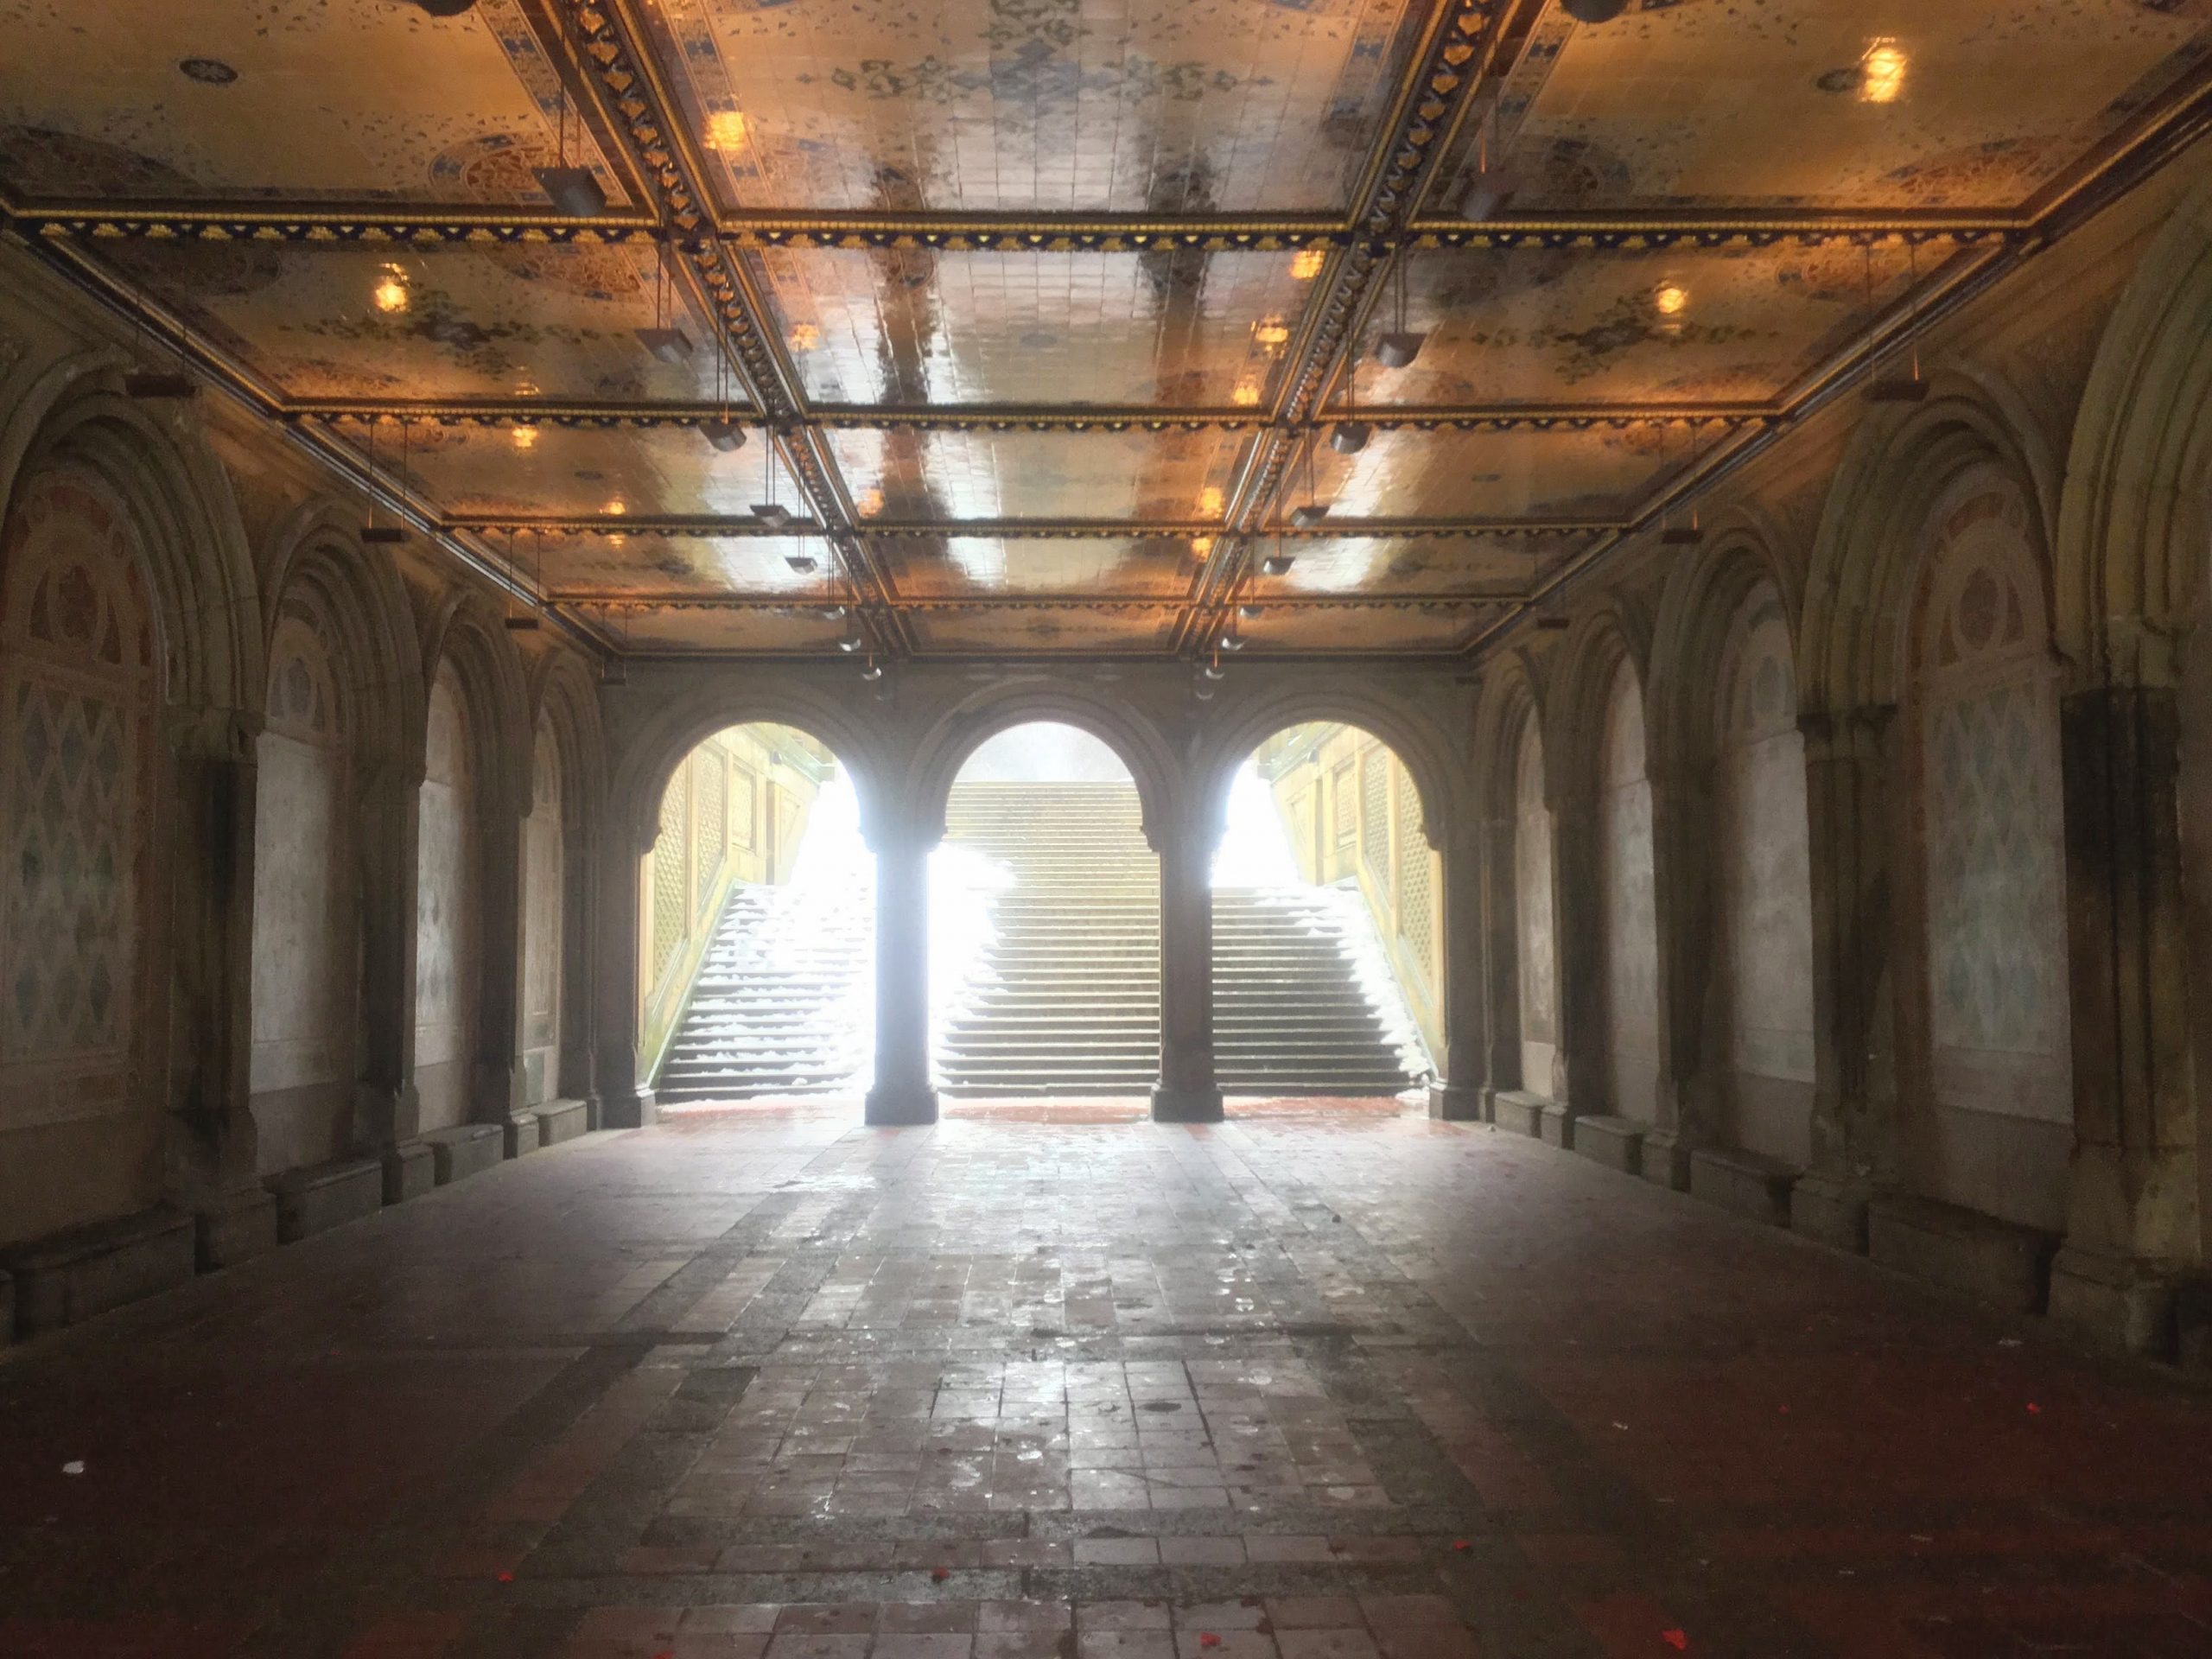 Bethesda Terrace in the snow